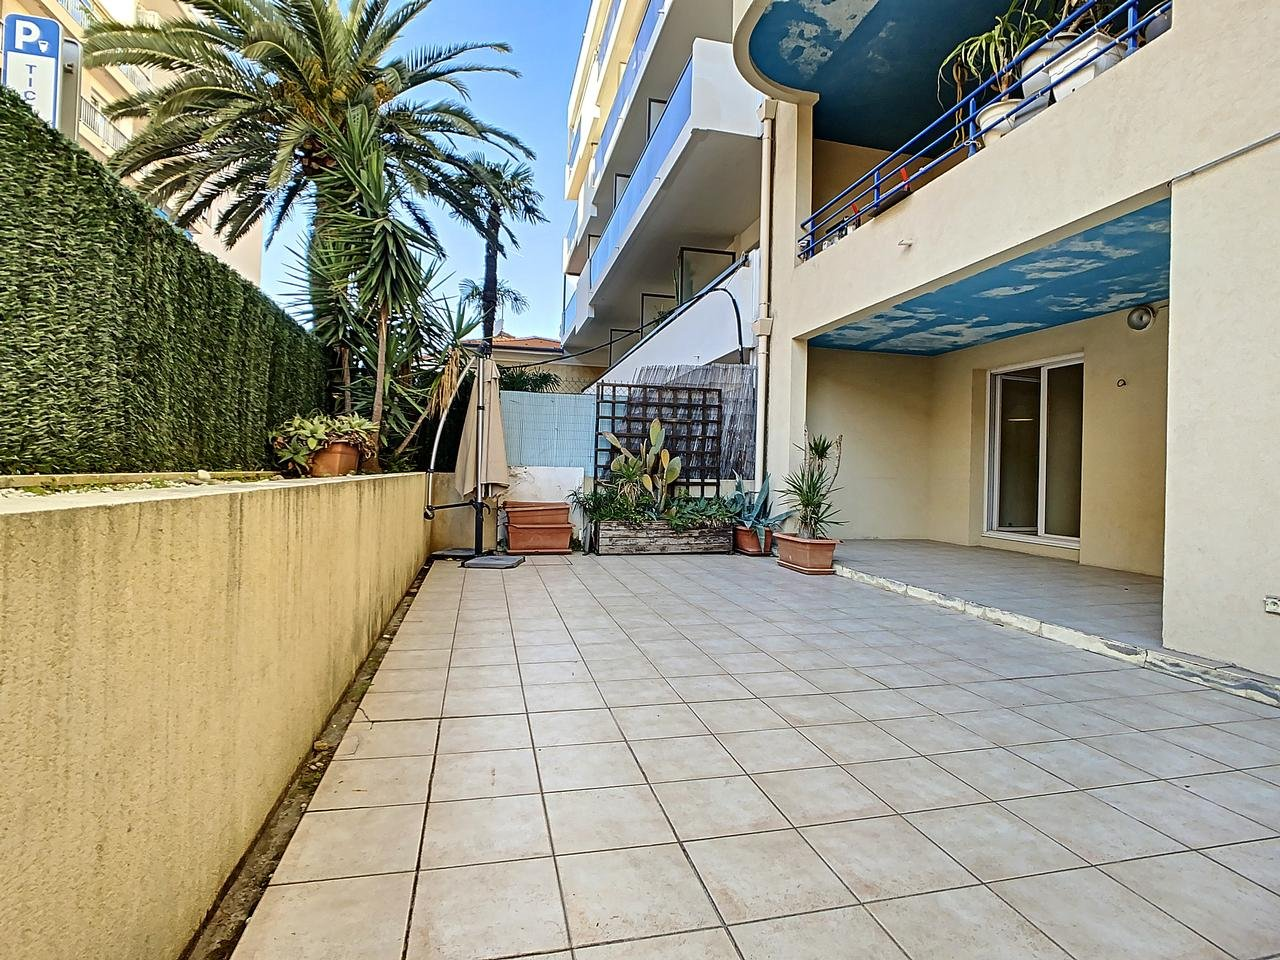 Appartement  3 Rooms 65.65m2  for sale   325000 €